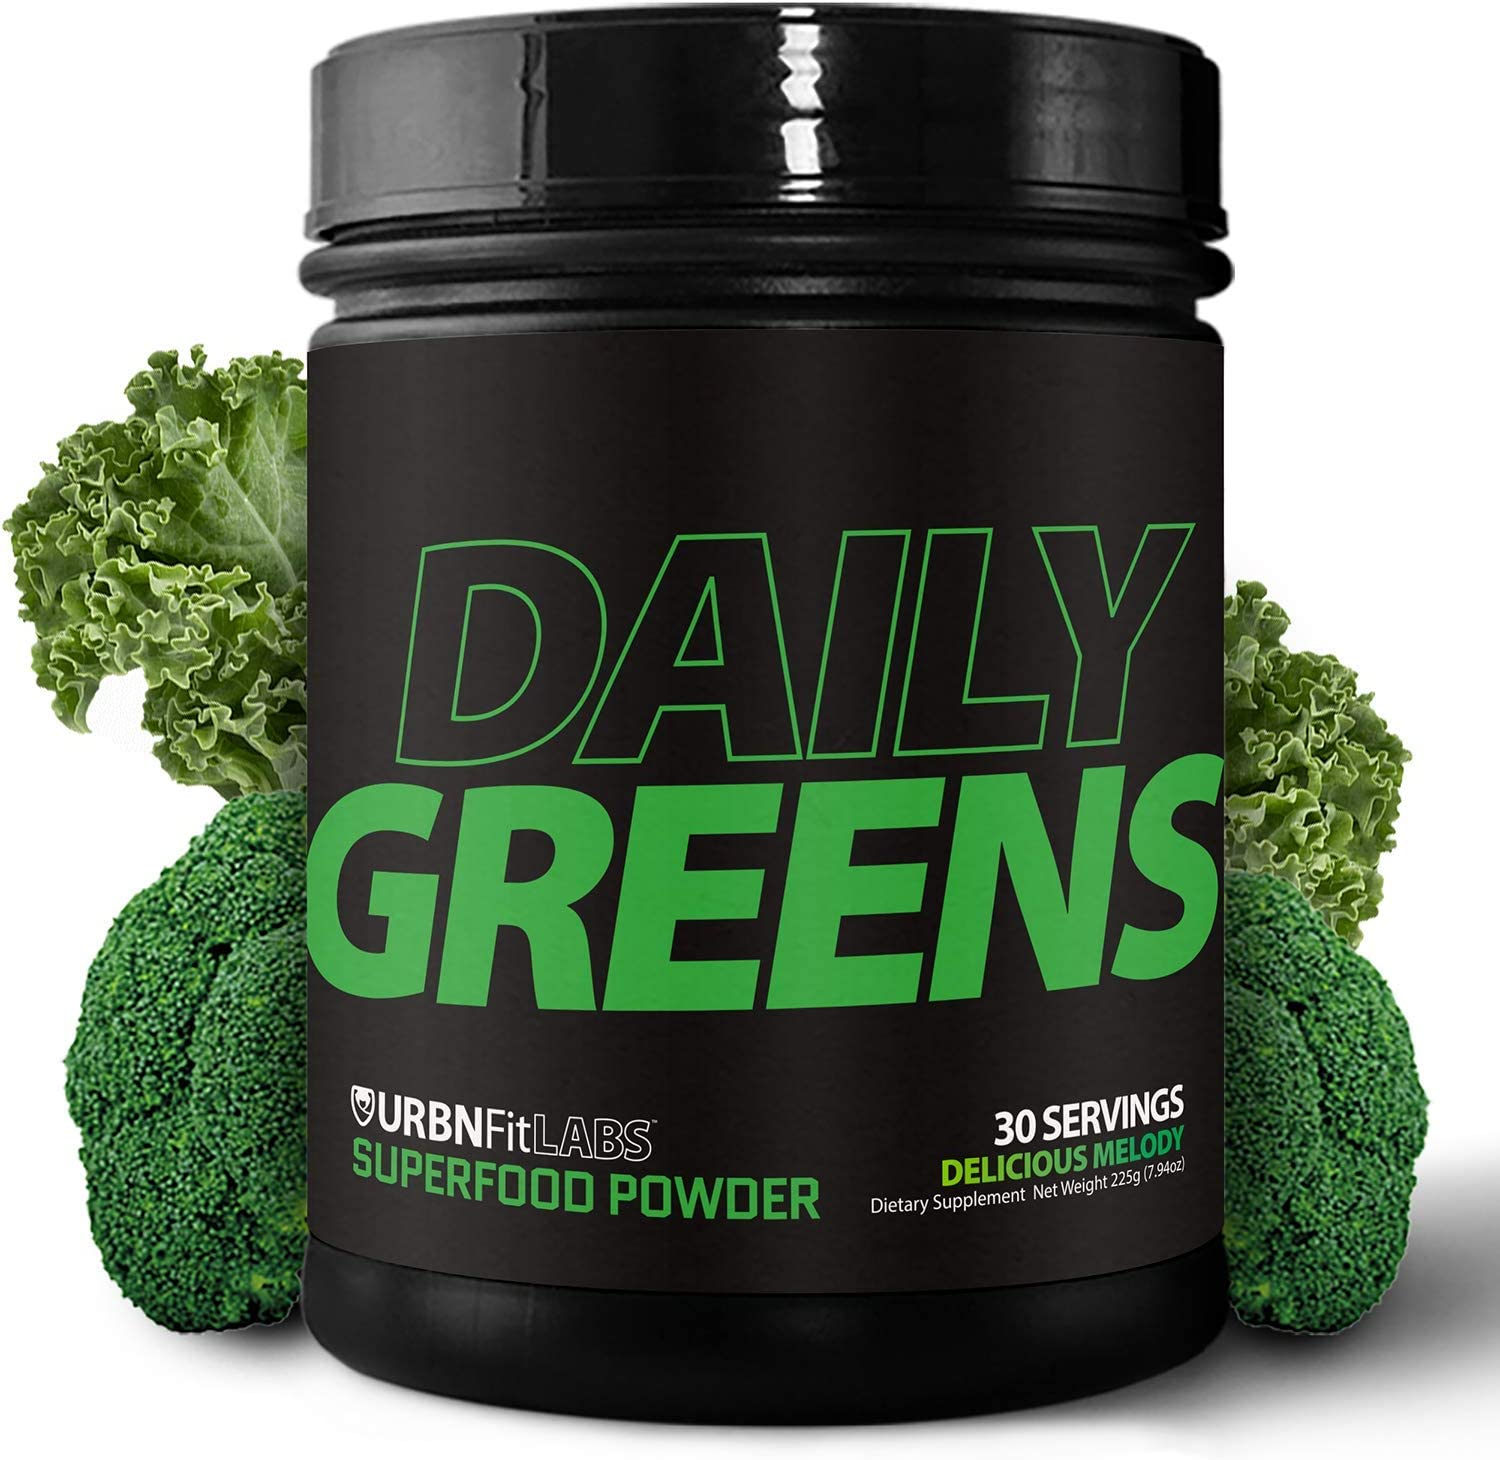 Daily Greens Organic Superfood Powder Supplement 15 Organic Plant-Based Fruits and Vegetables in One Scoop All Critical Vitamins, Minerals and Antioxidants for Peak Energy and Performance